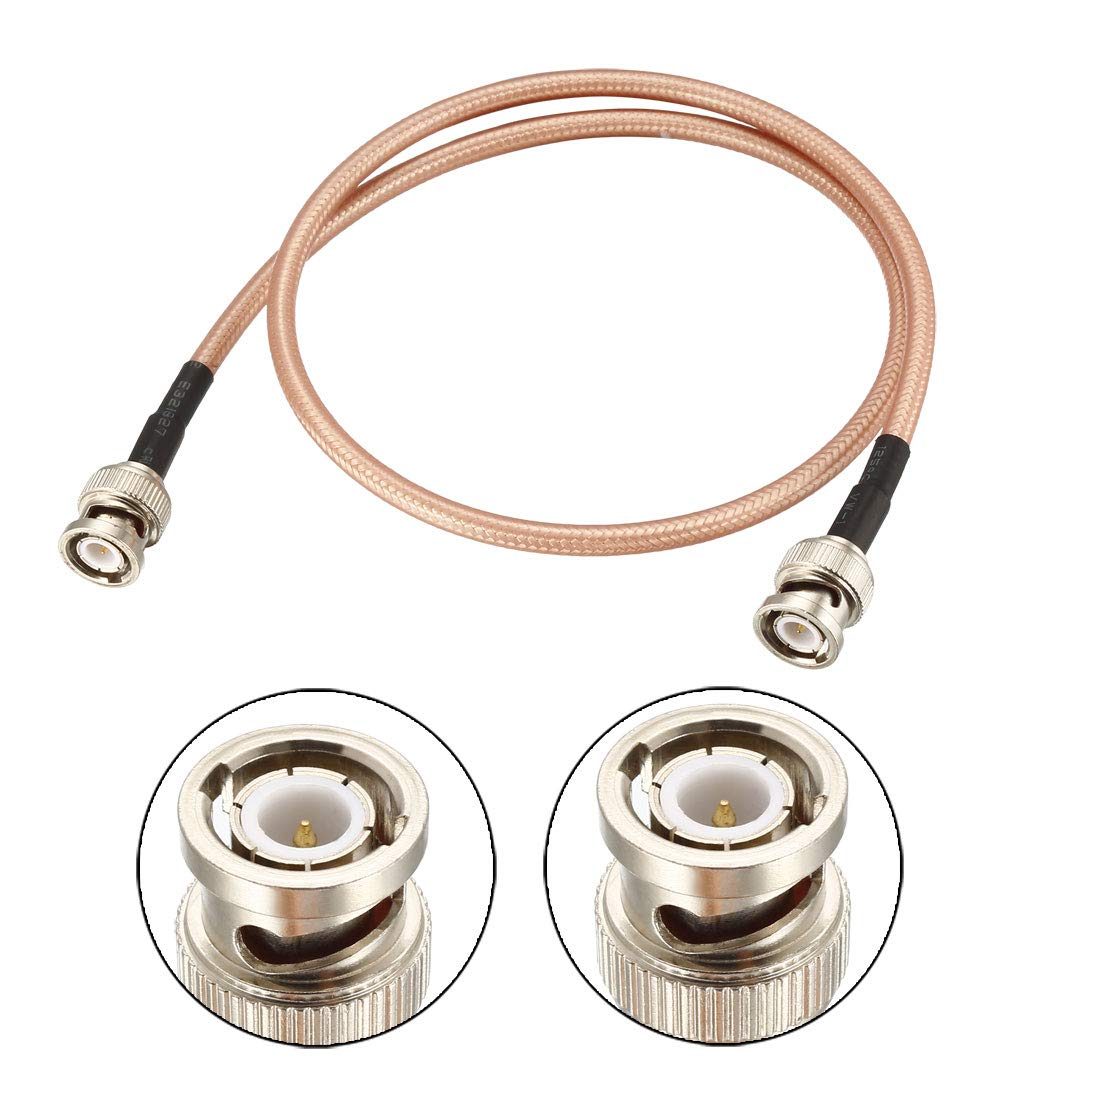 uxcell BNC Male to BNC Male Coax Cable RG400 Low Loss RF Coaxial Cable 50 ohm 0.9M//3Ft